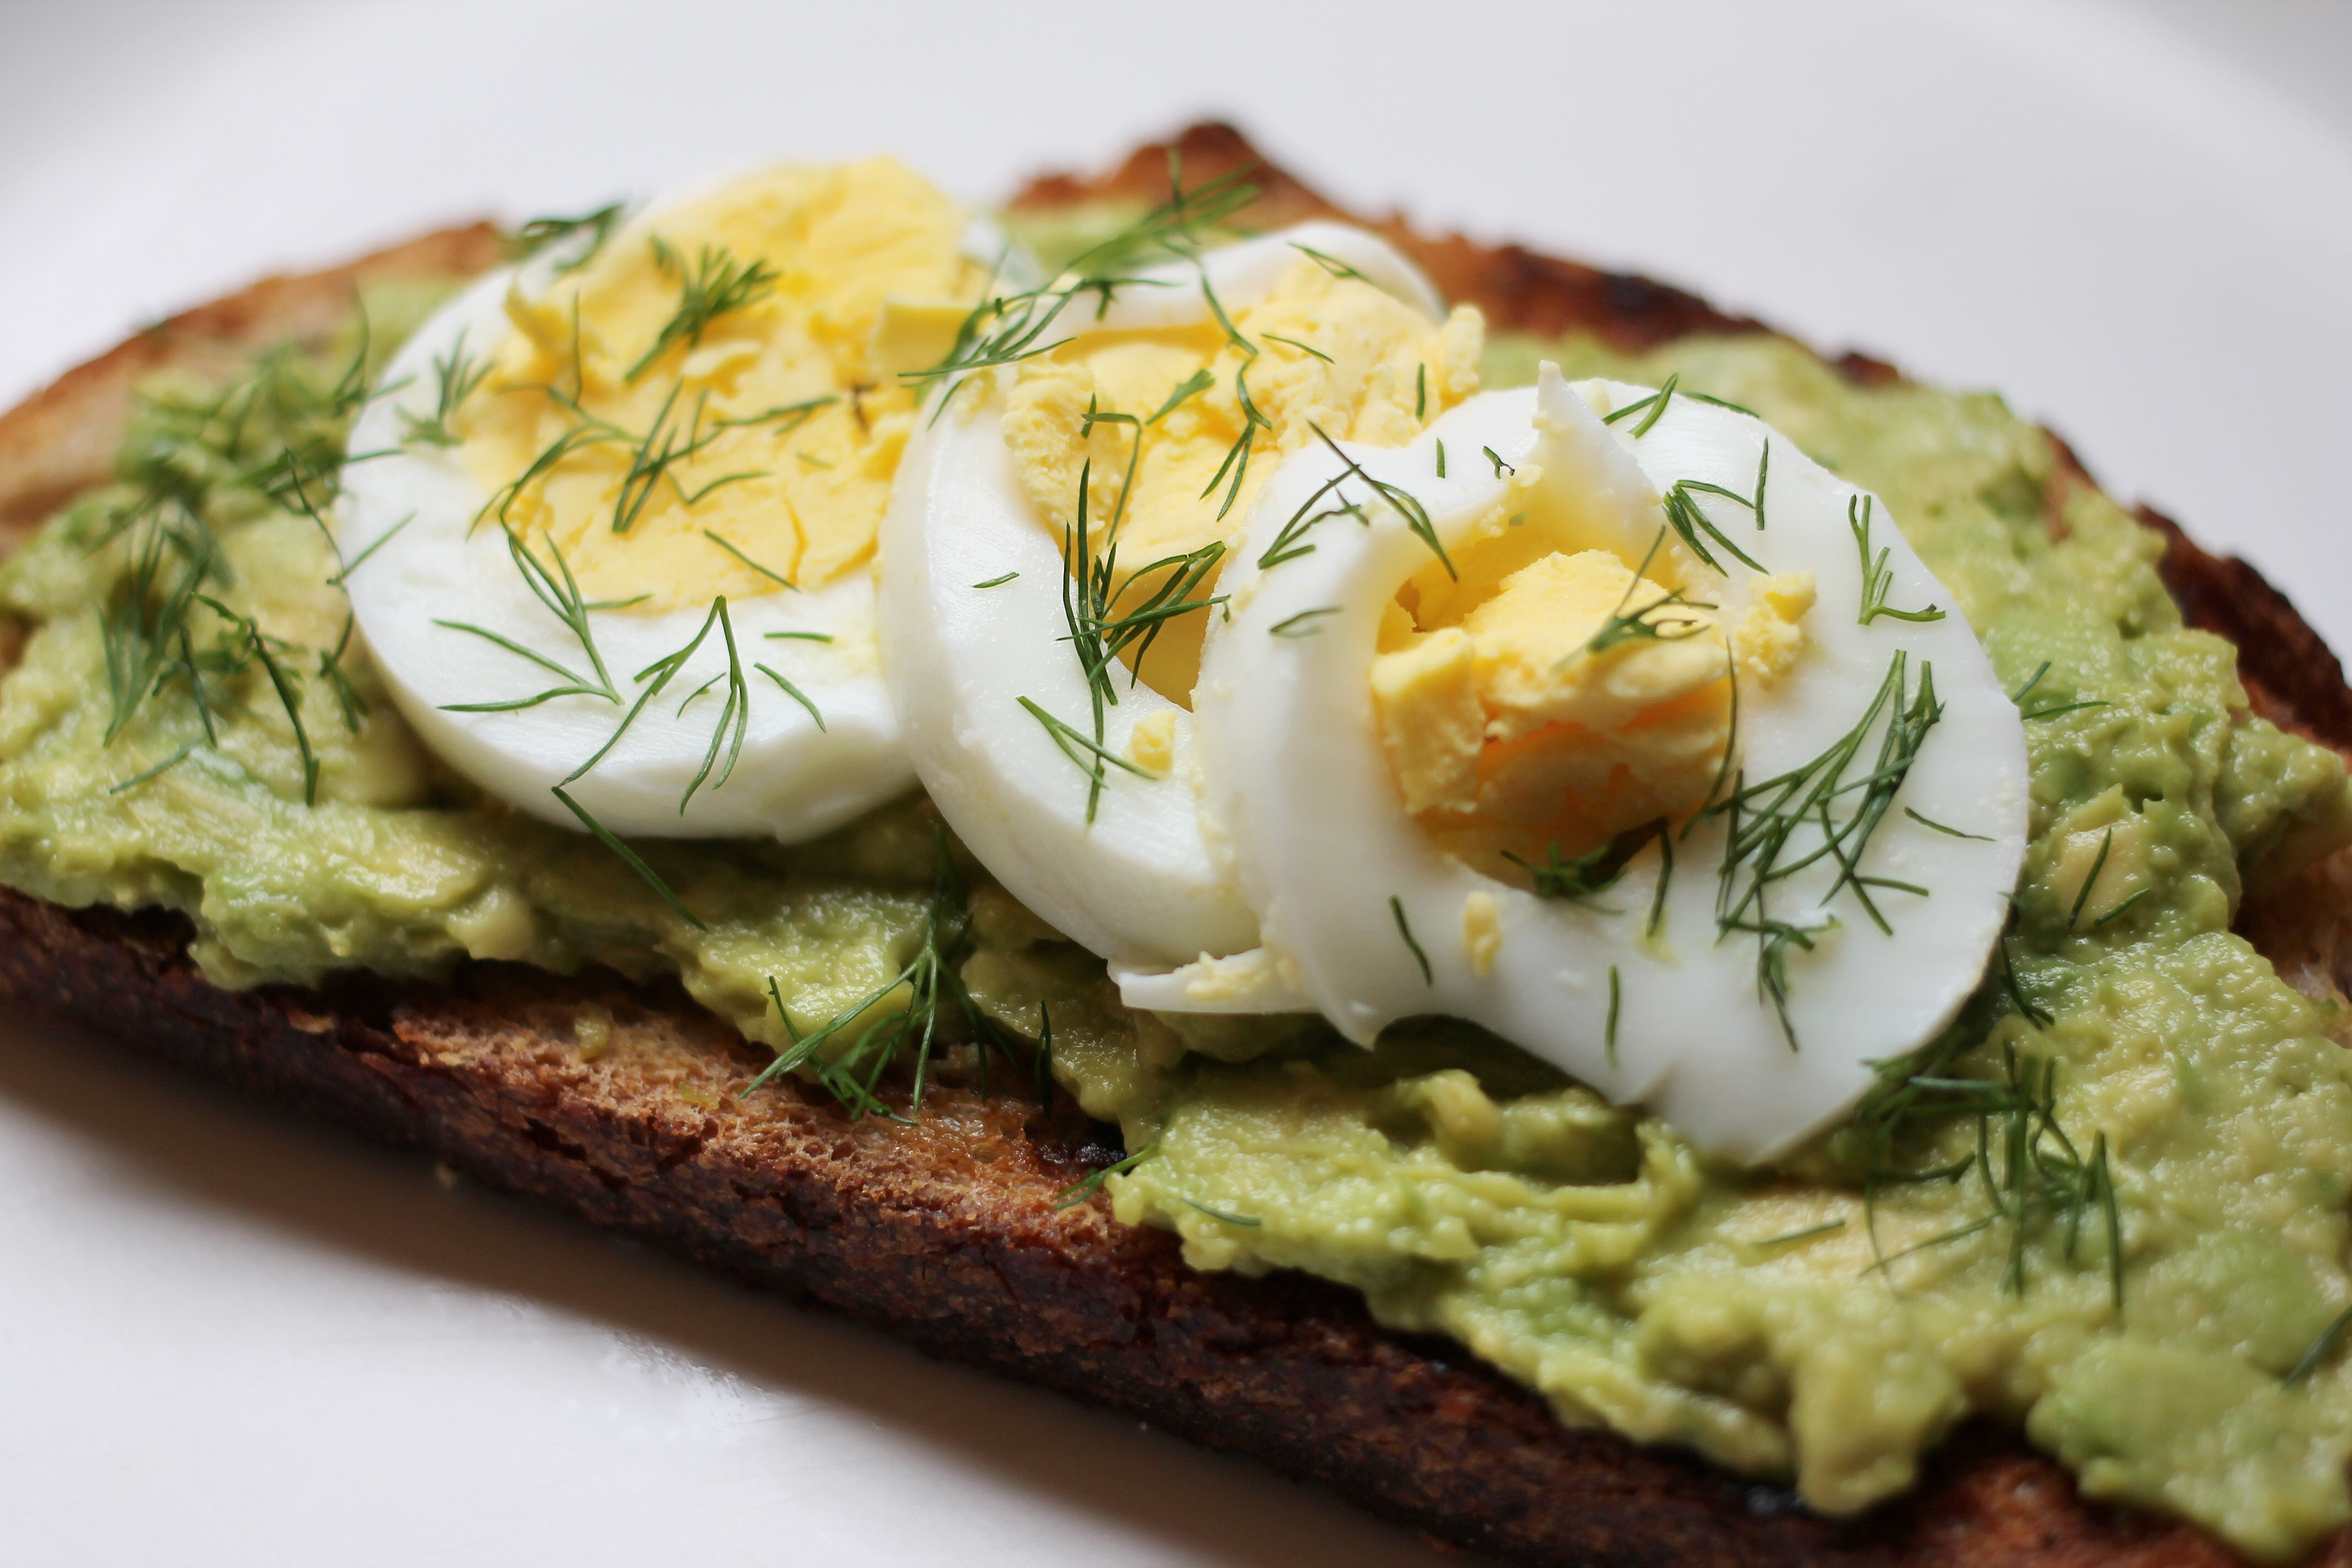 Avocado Toast with Egg and Dill